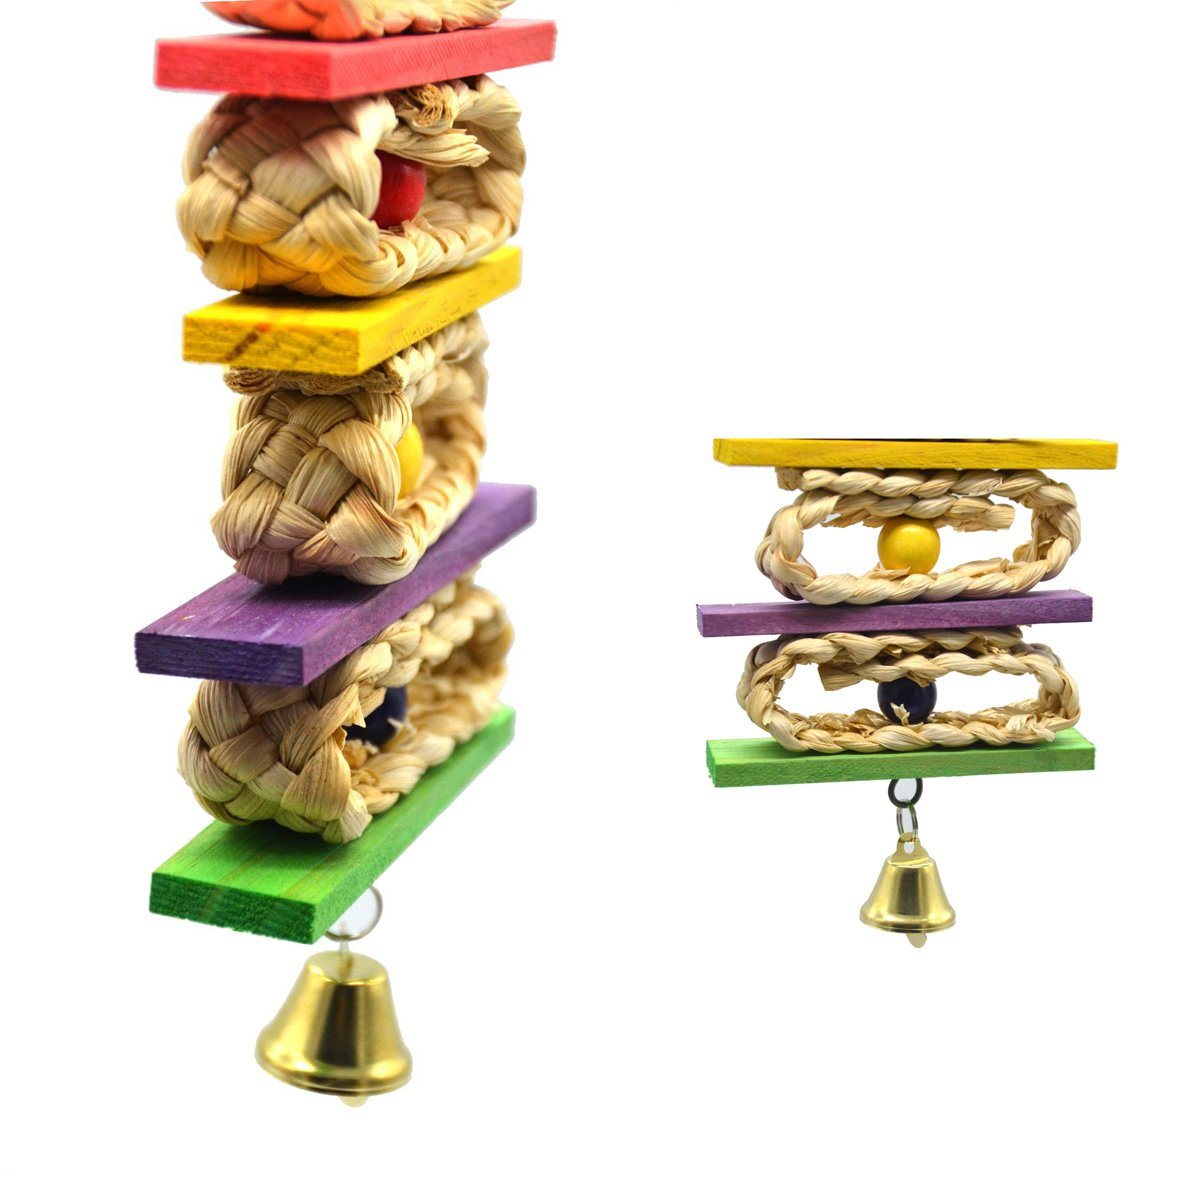 Homiego Natural and Colorful Knots Block Parrot Chewing Toys for Small and Medium Birds